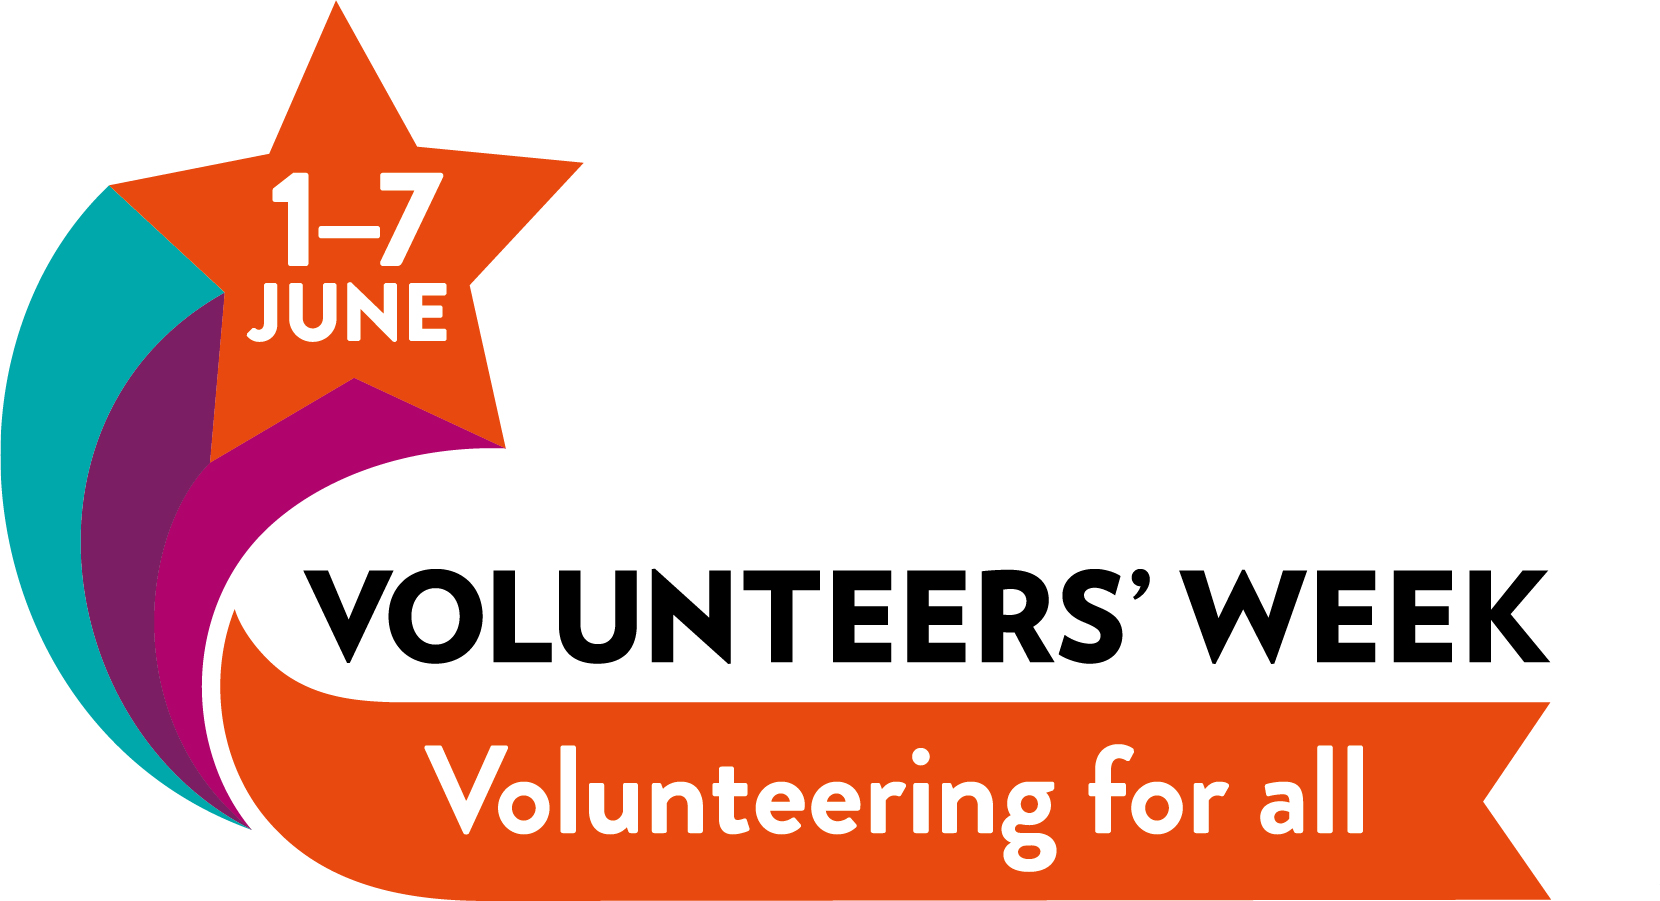 It's Volunteers Week! Do something great